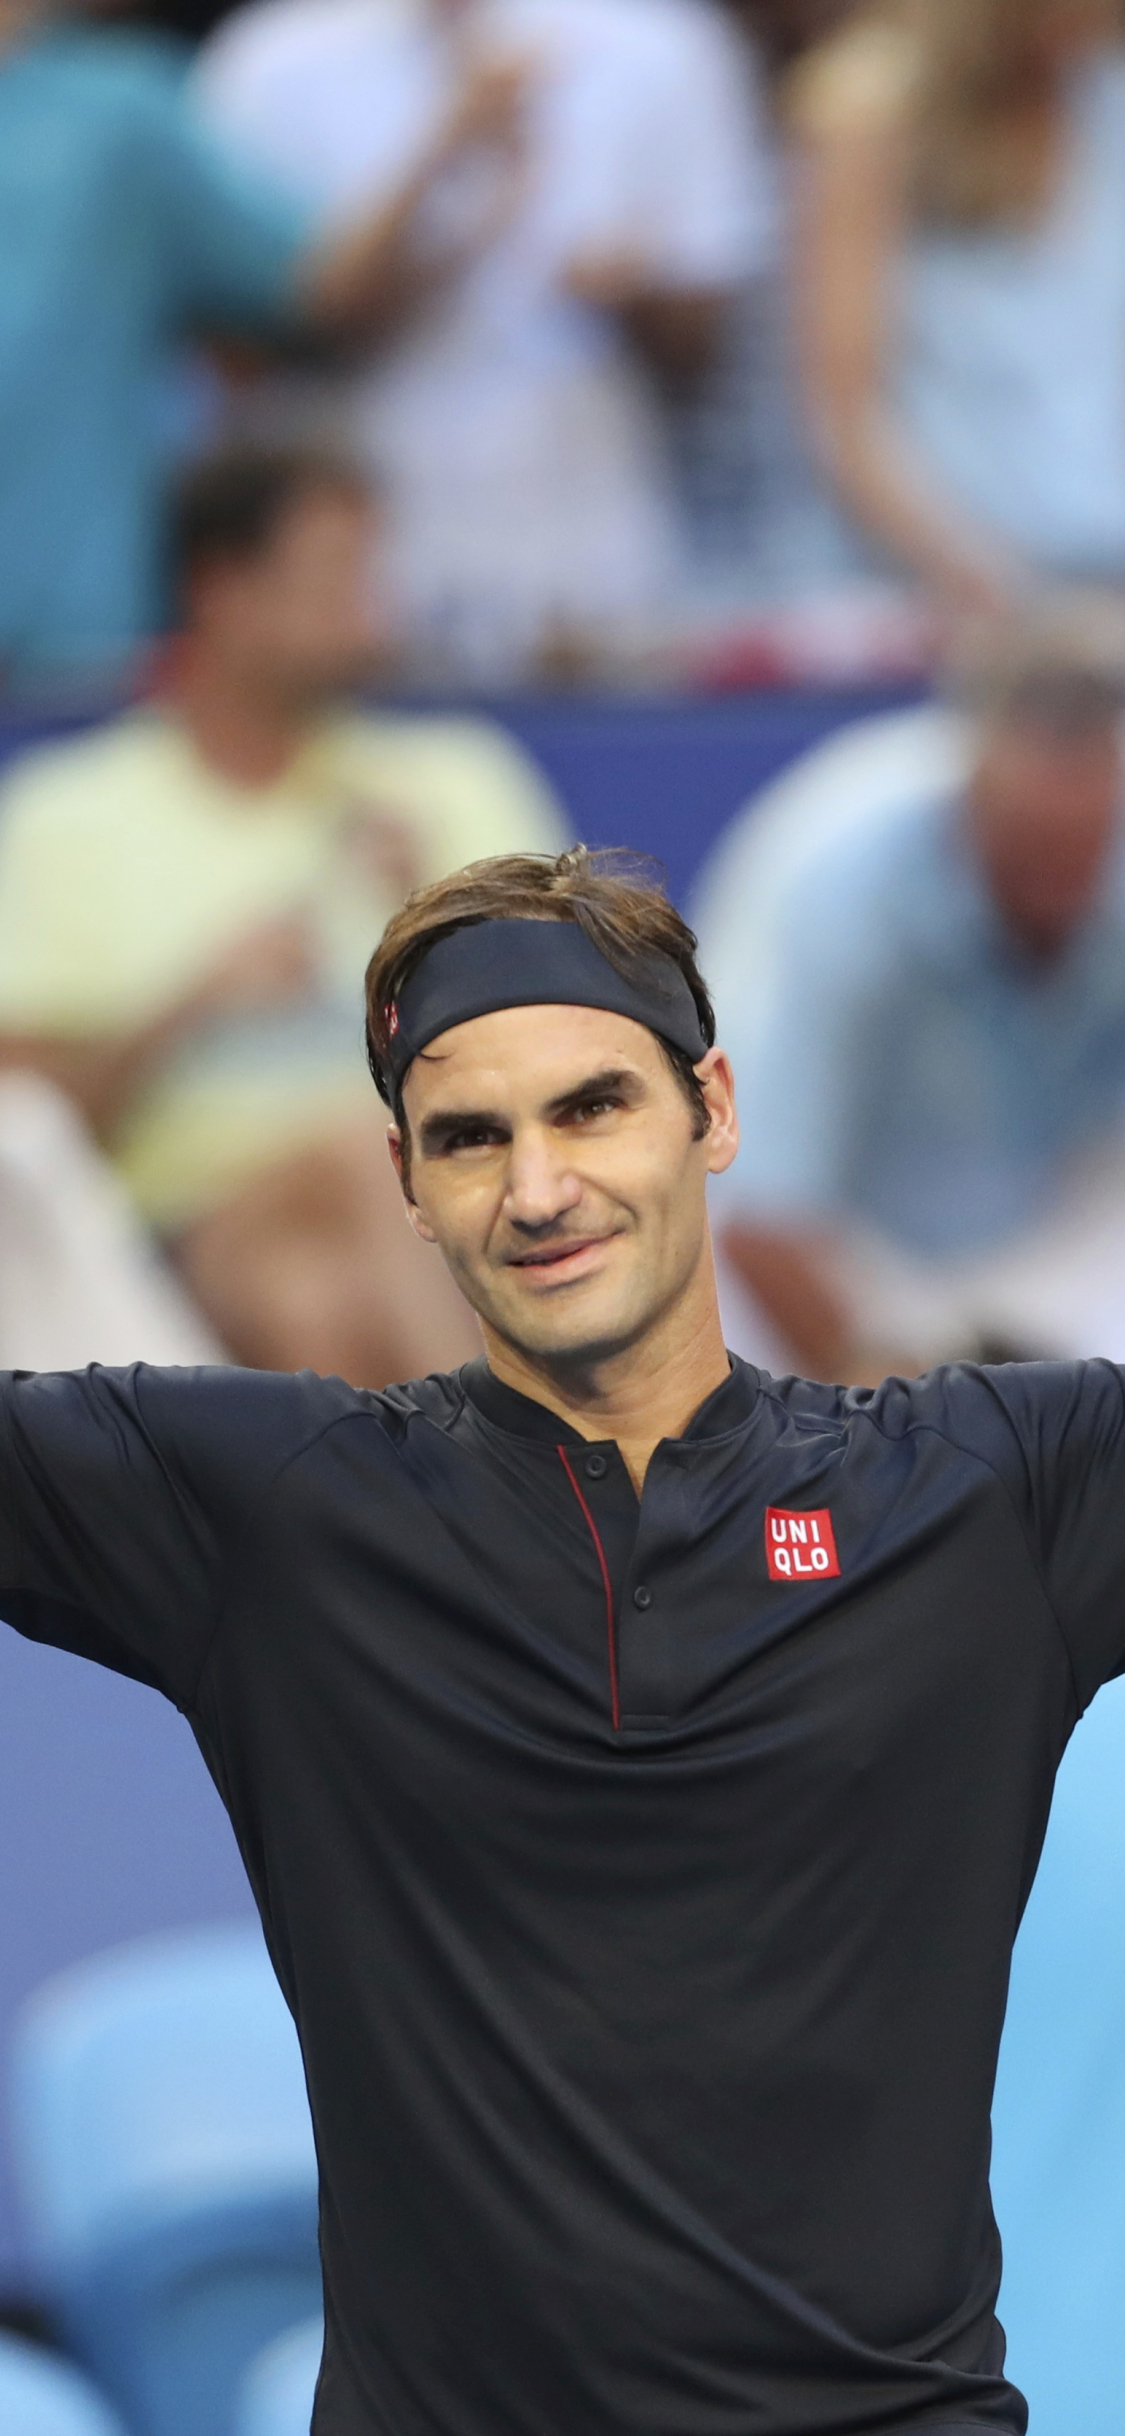 Sports Roger Federer 1125x2436 Wallpaper Id 789304 Mobile Abyss